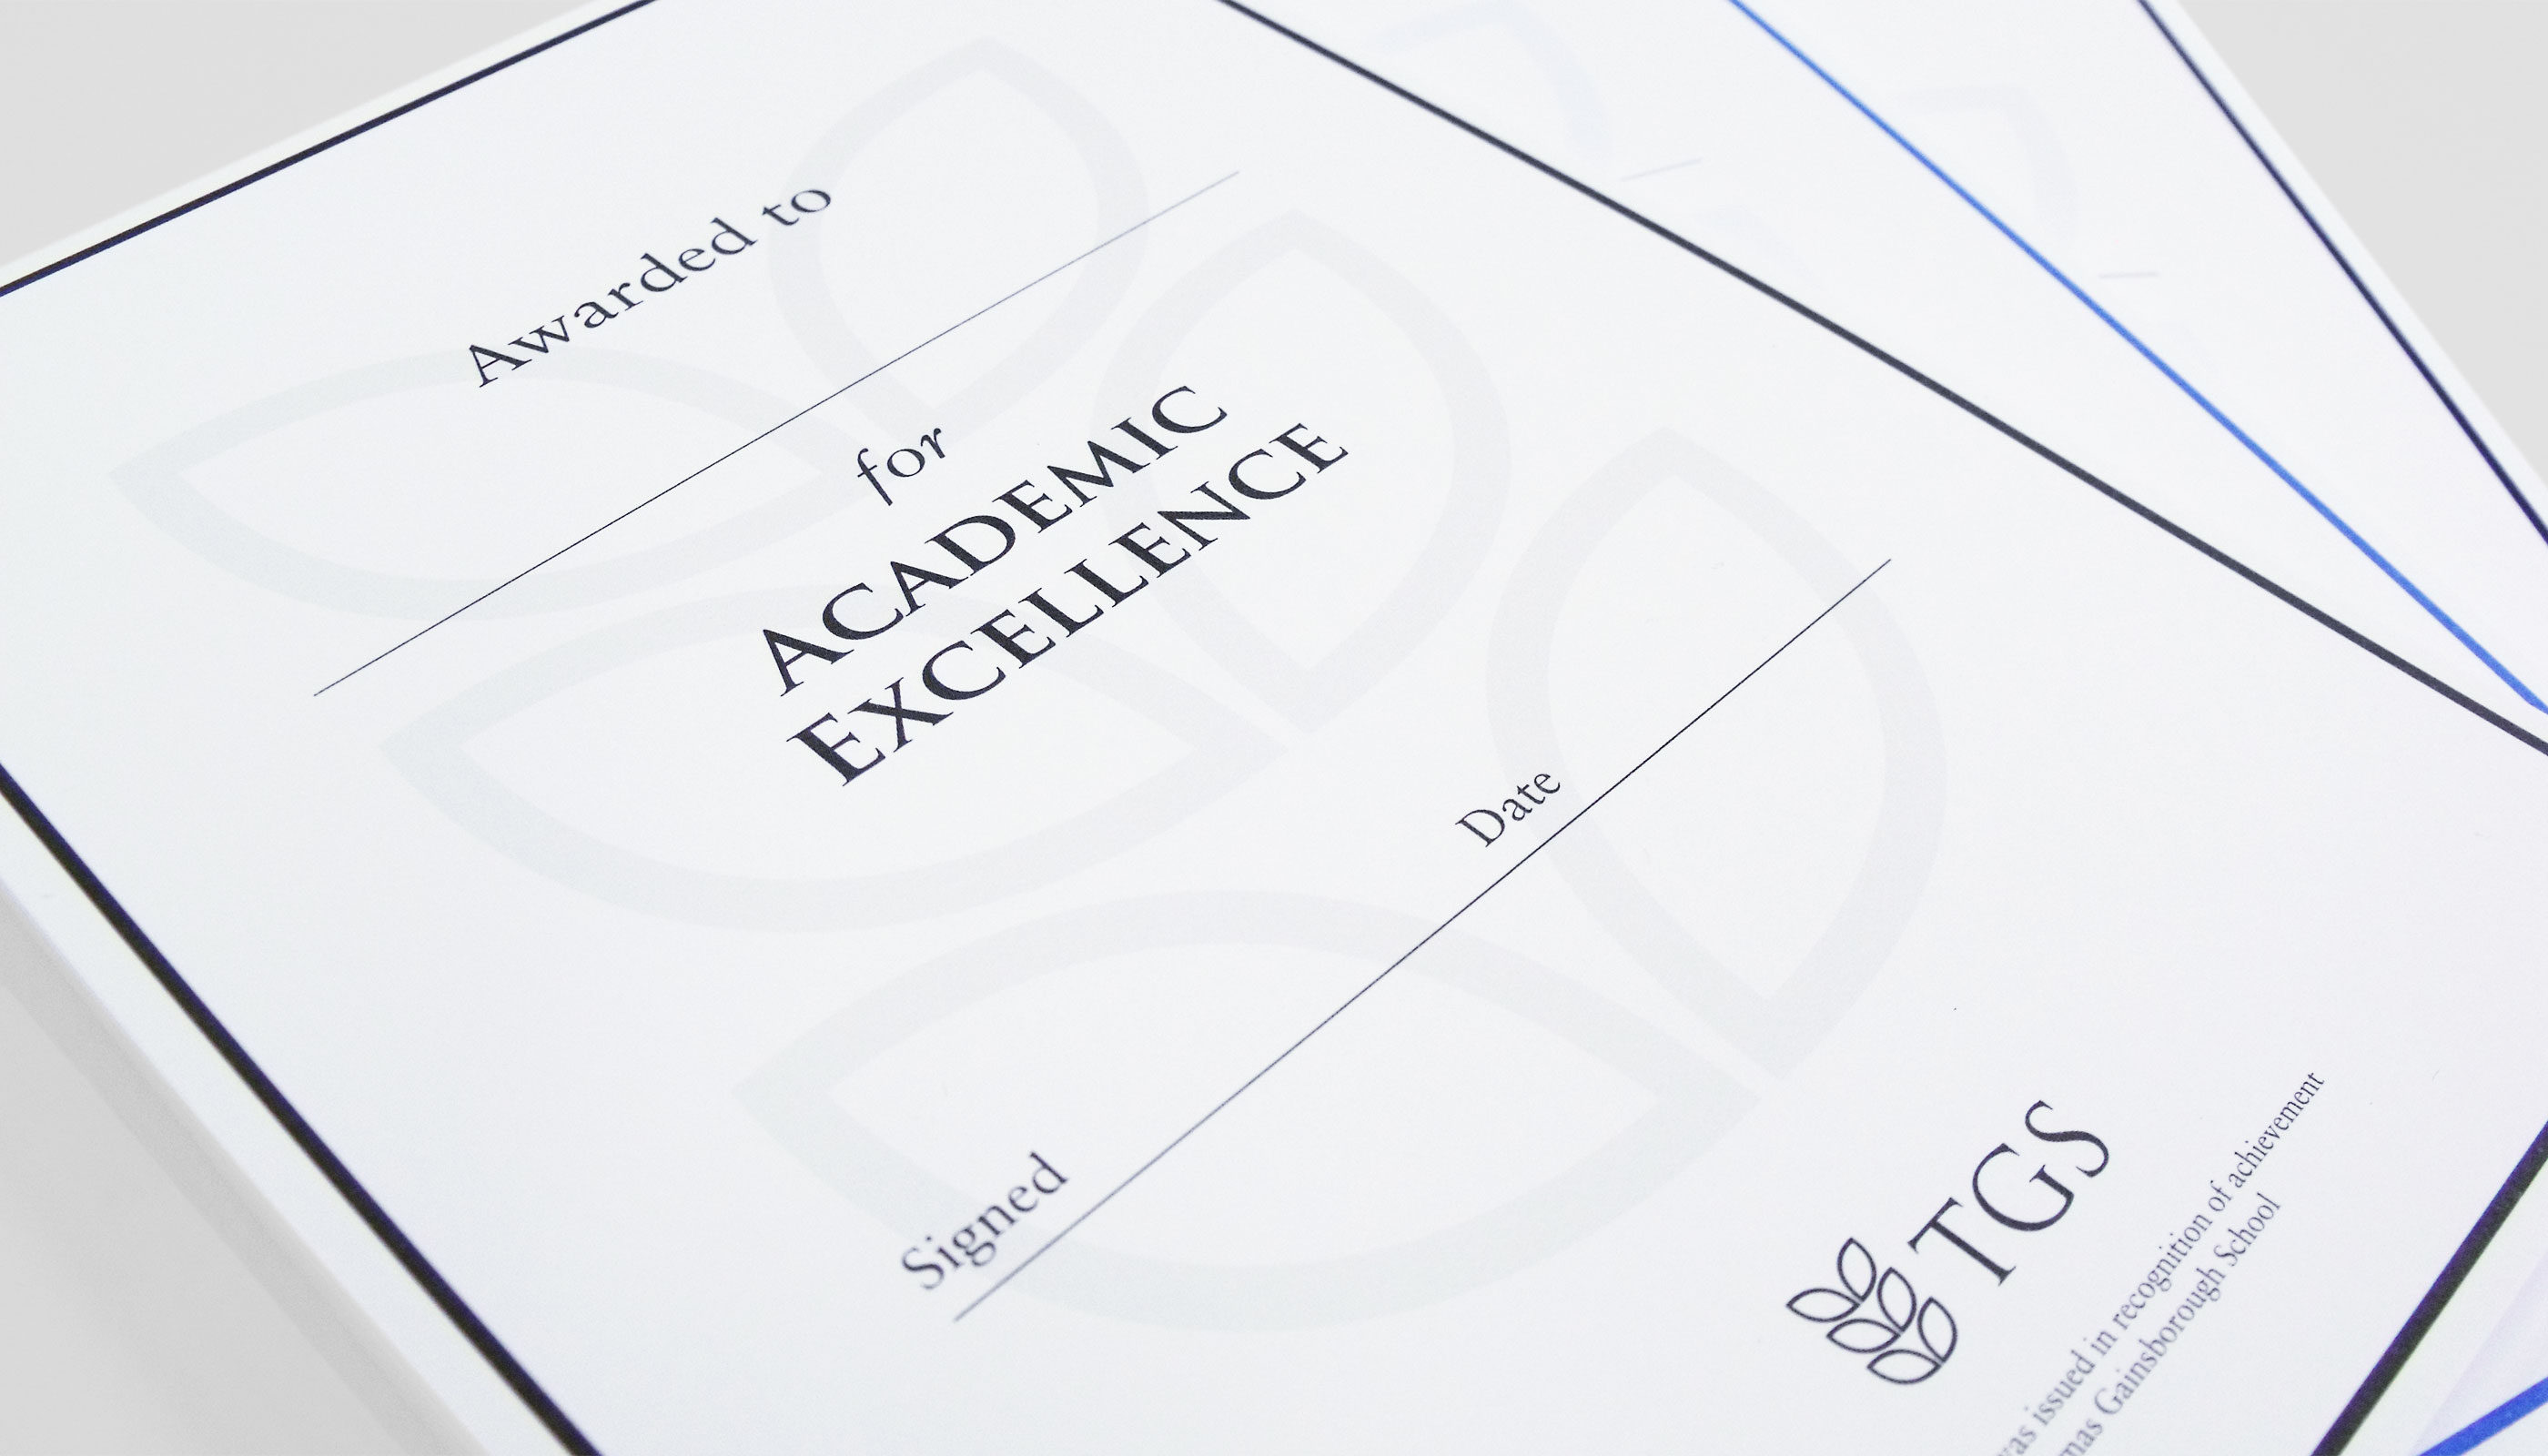 Certificate design and print for Thomas Gainsborough School in Sudbury, Suffolk.